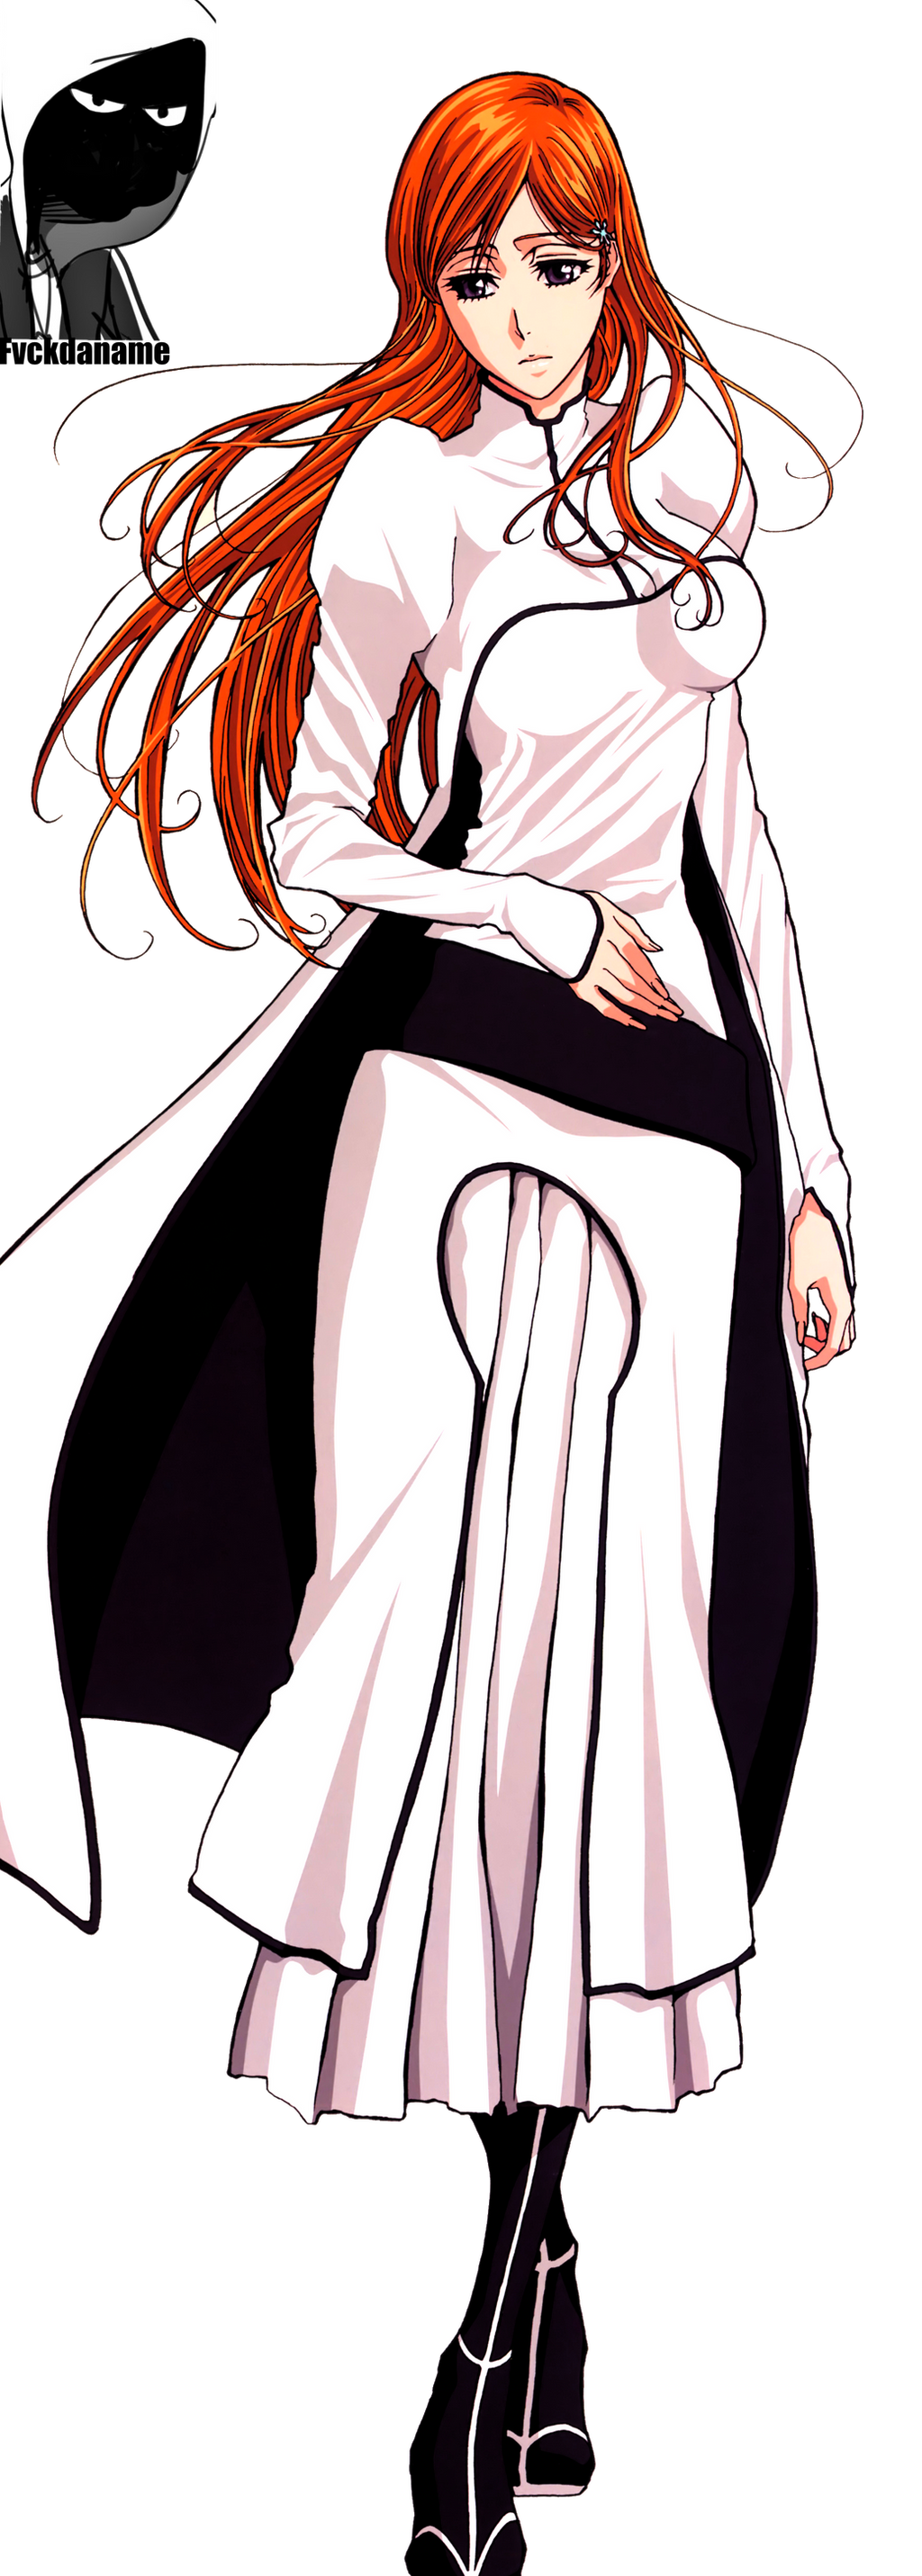 Image Result For Bleach Manga Mobile Wallpaper